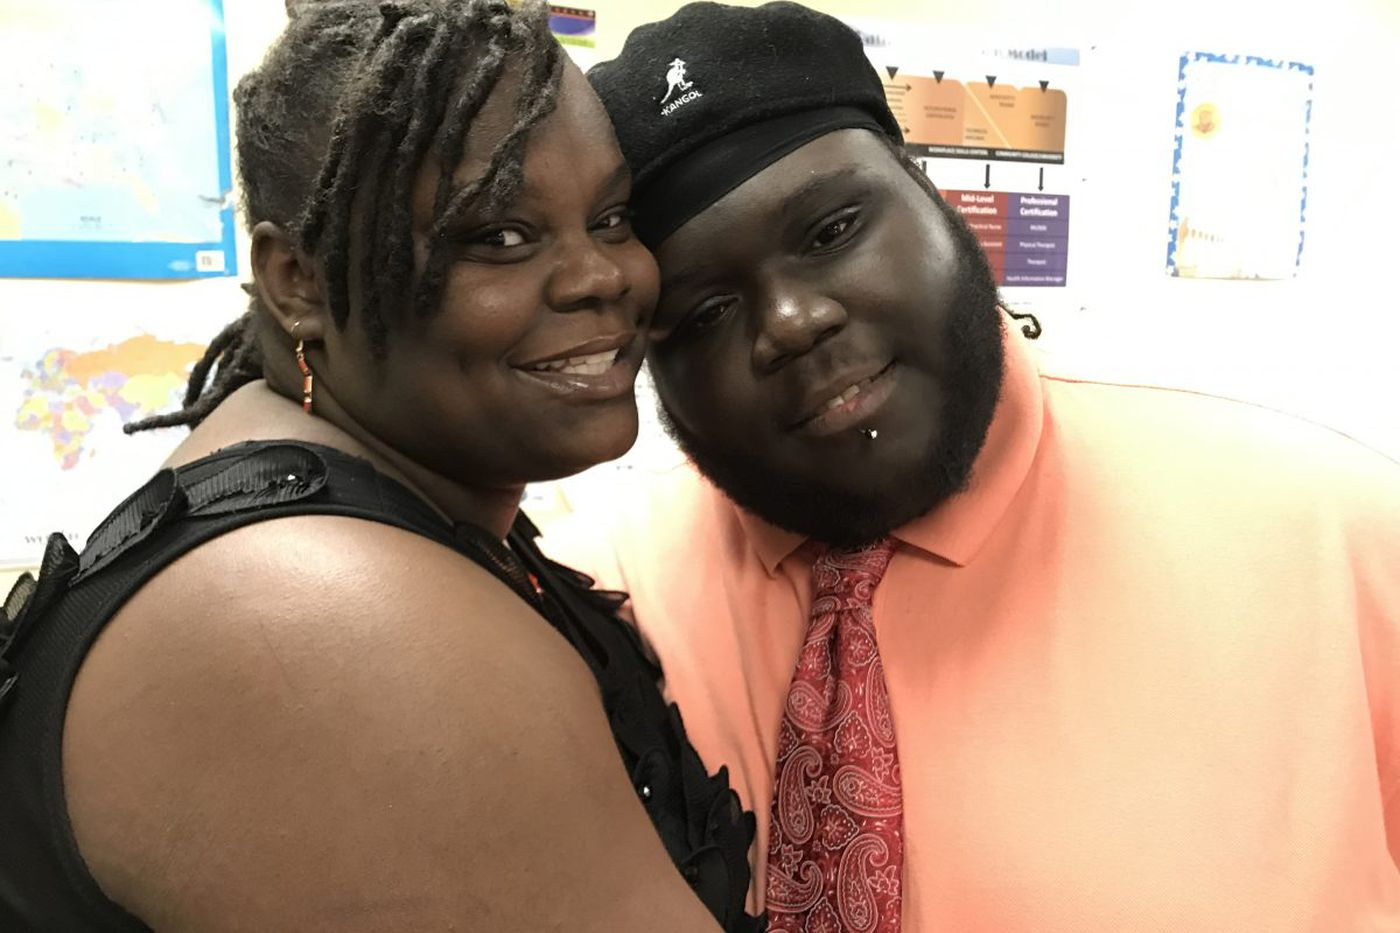 Philly couple's journey to hope shows the power of apprenticeships